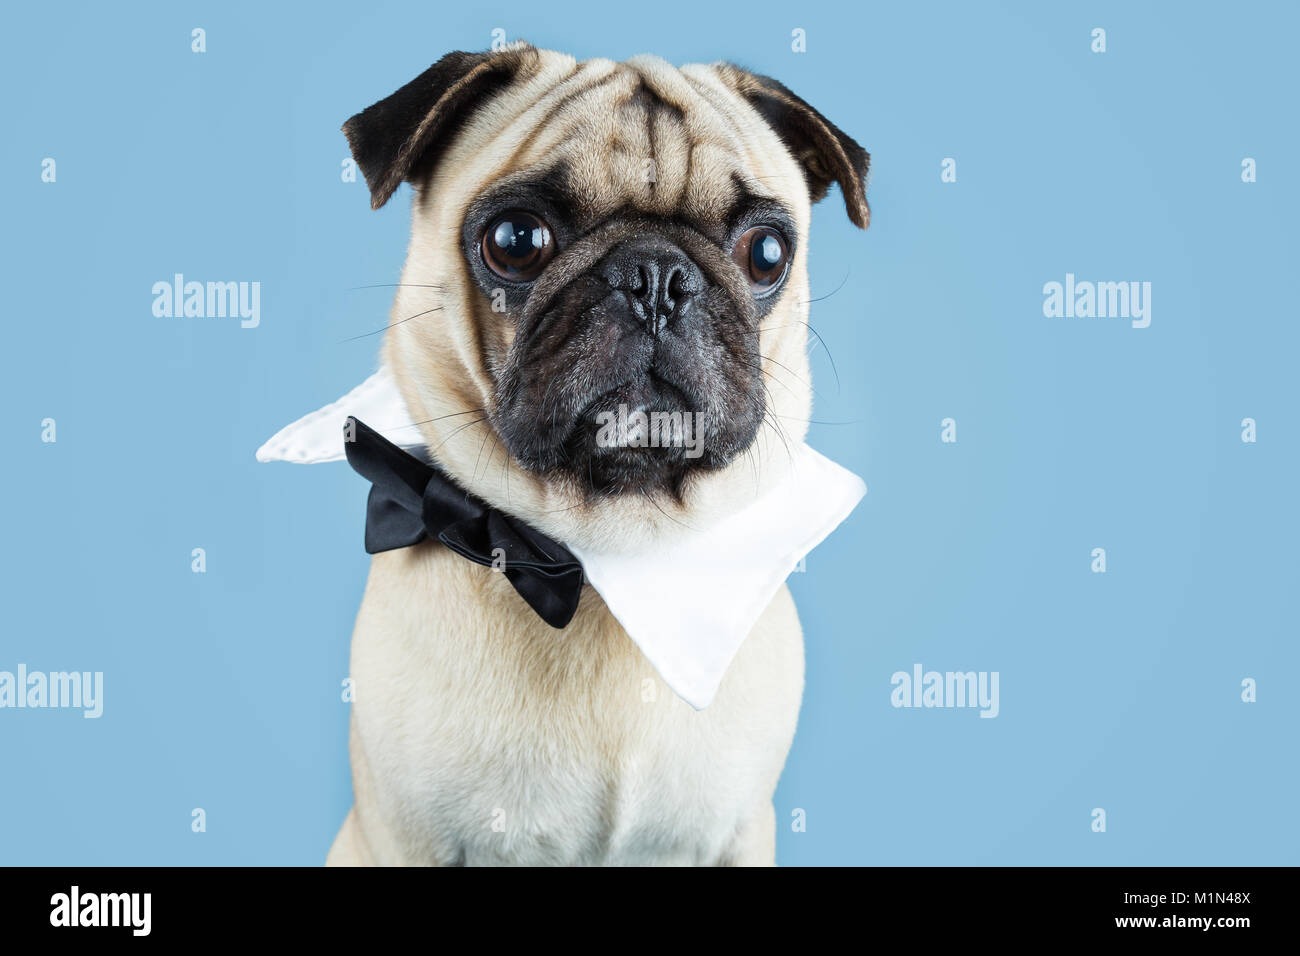 A cute fawn pug wearing a bow tie as a collar with a blue background. - Stock Image